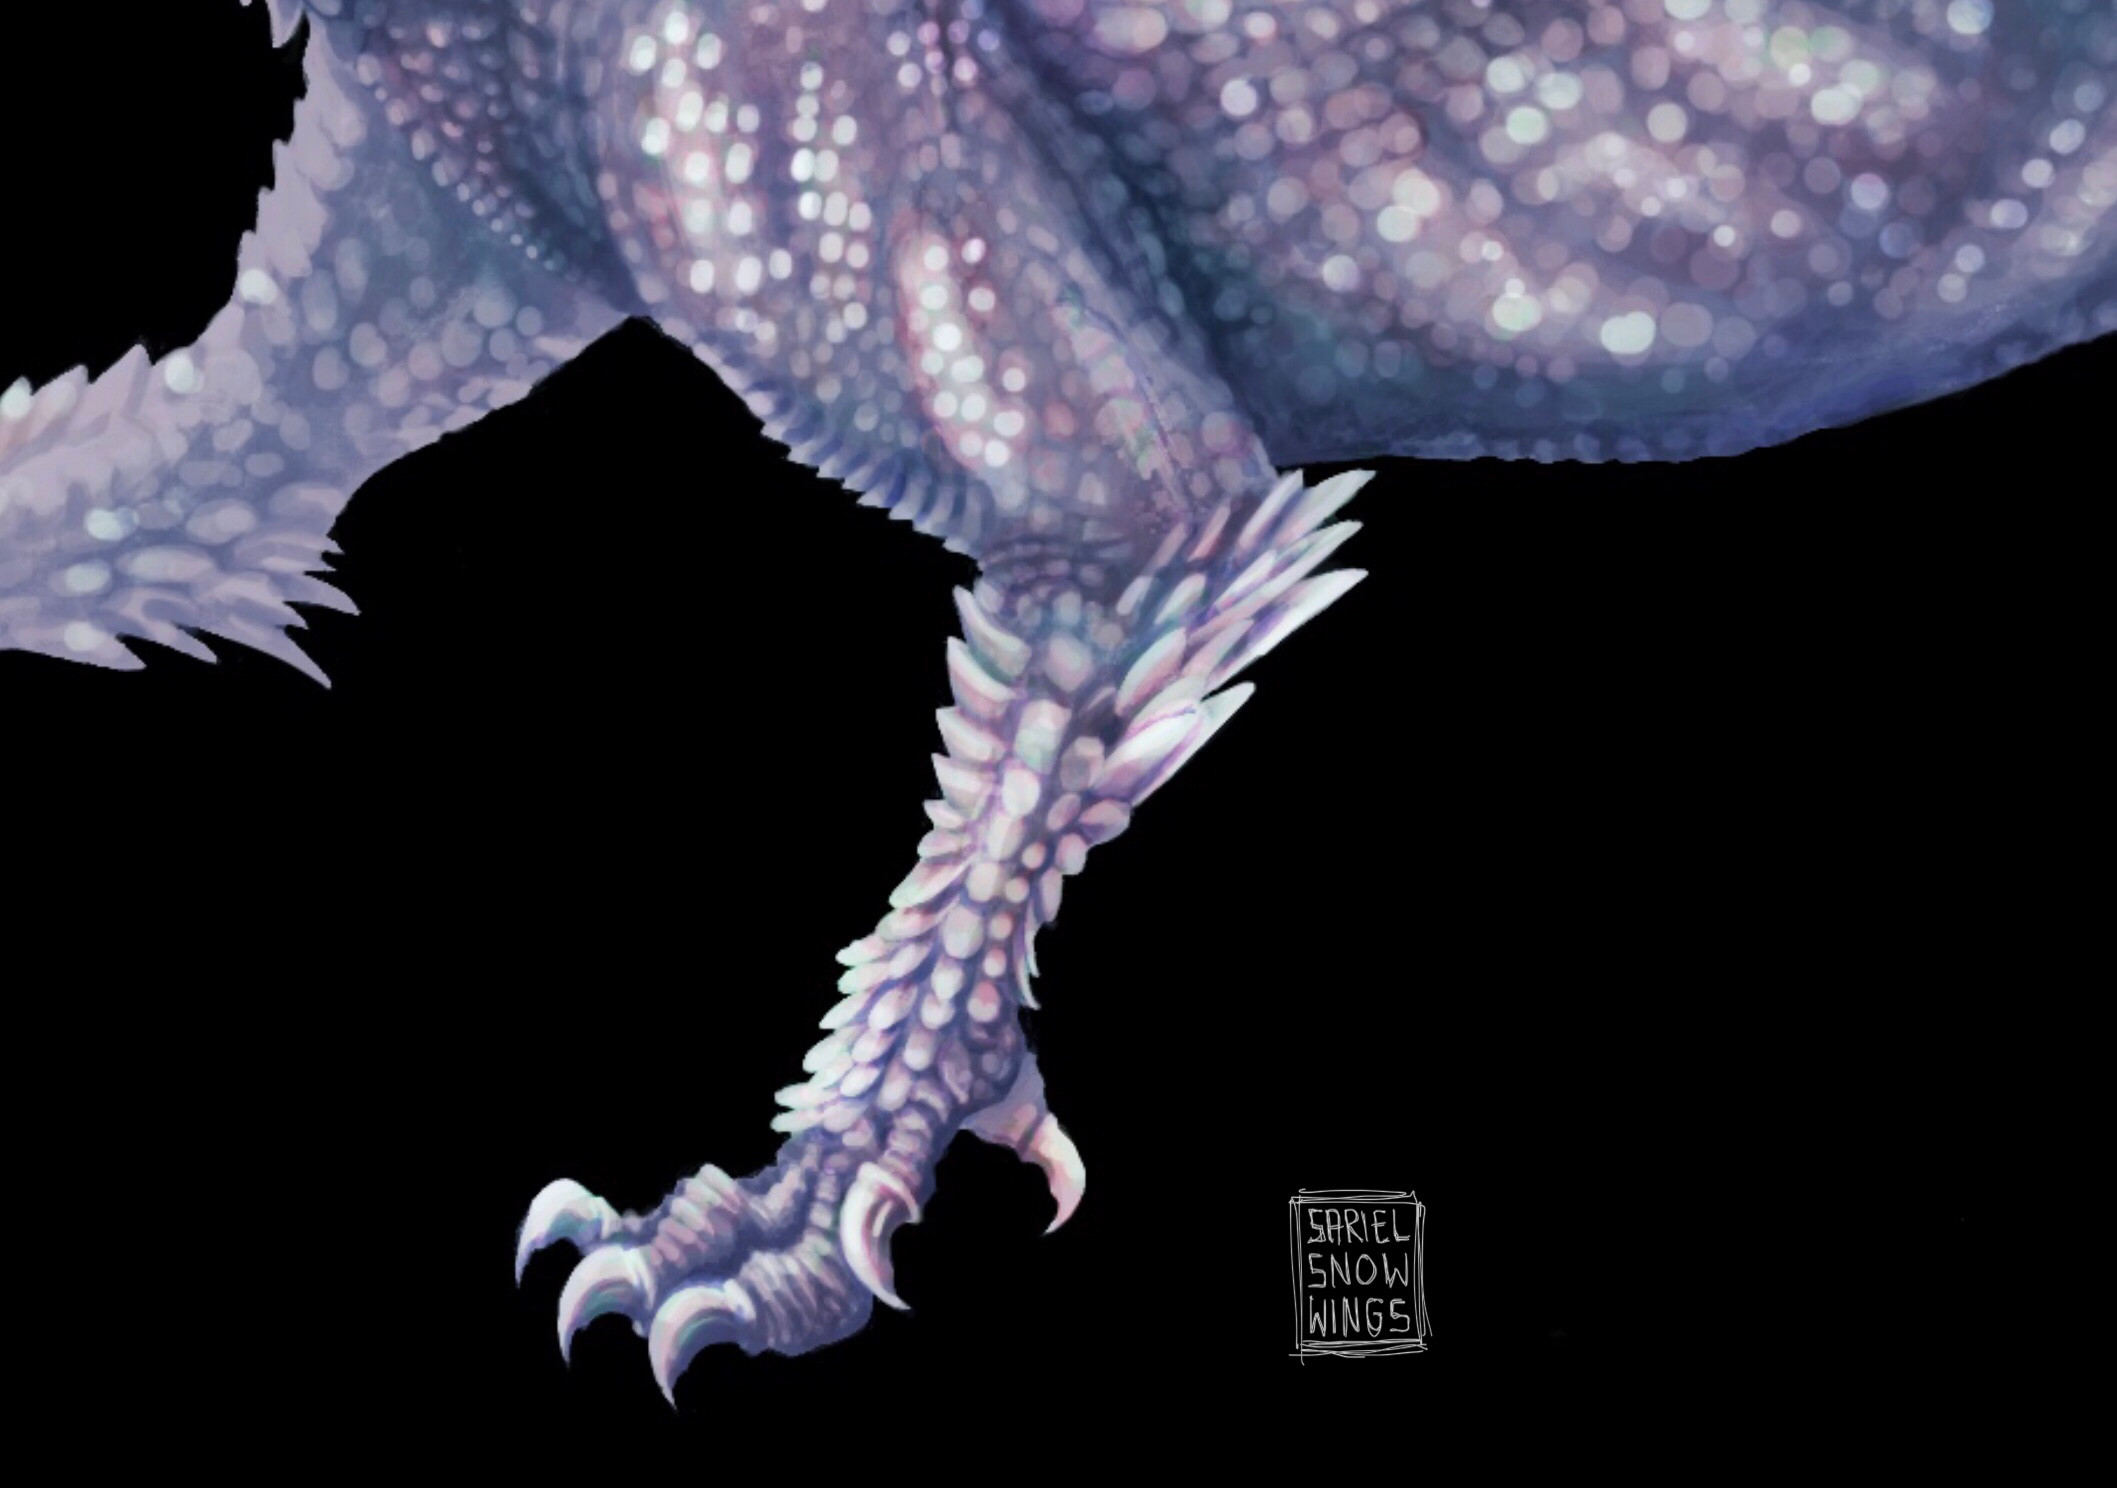 A detail shot of the left arm's talons. Inspired by birds and other dinosaurs.